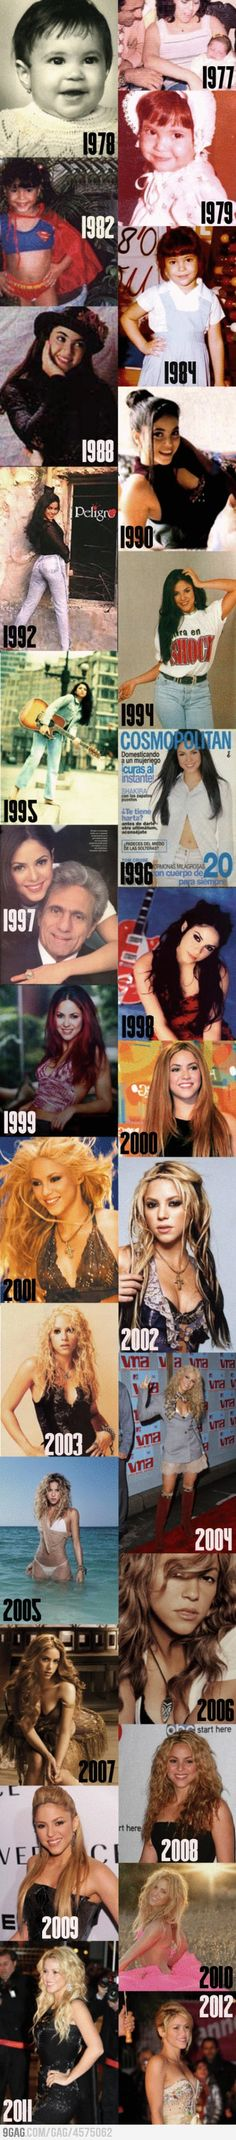 Through the years... and we lose her